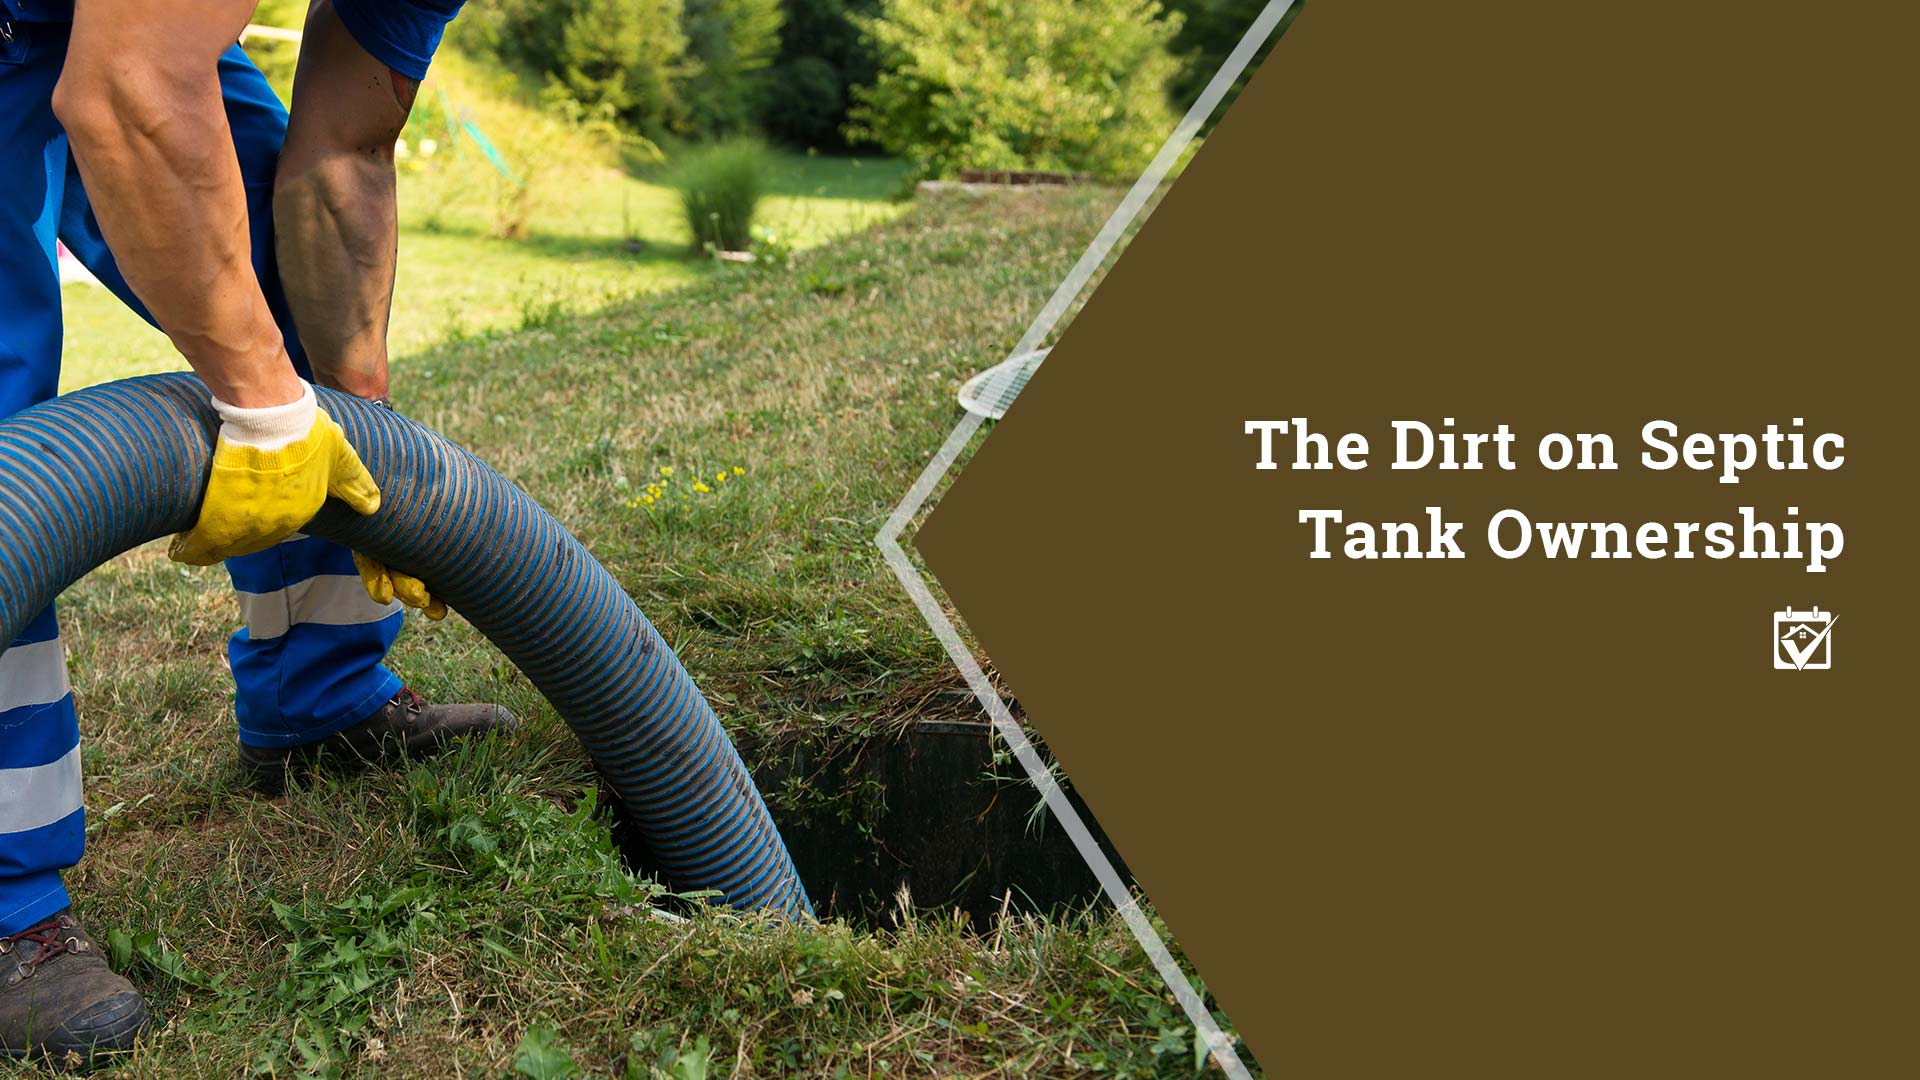 The Dirt on Septic Tank Ownership - HAR com